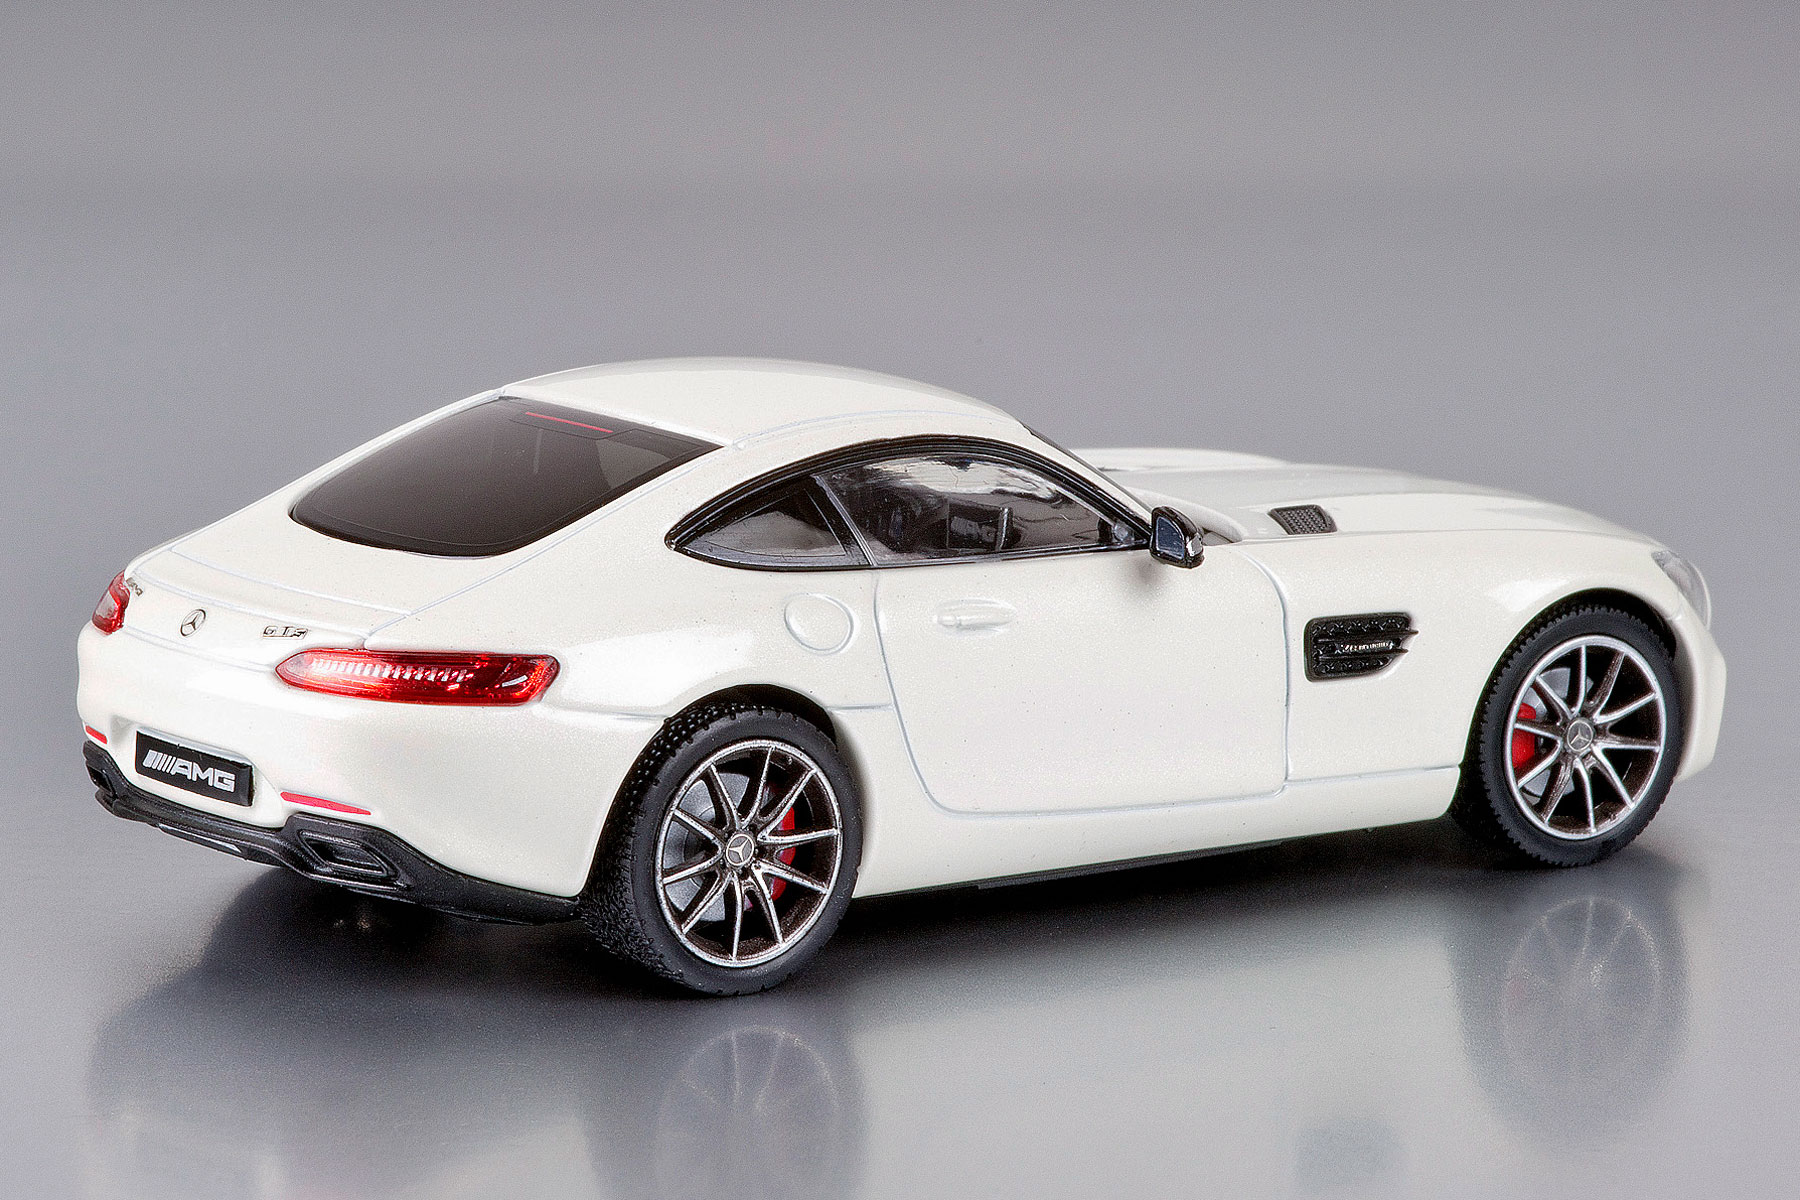 Mercedes-Benz makes the best model cars